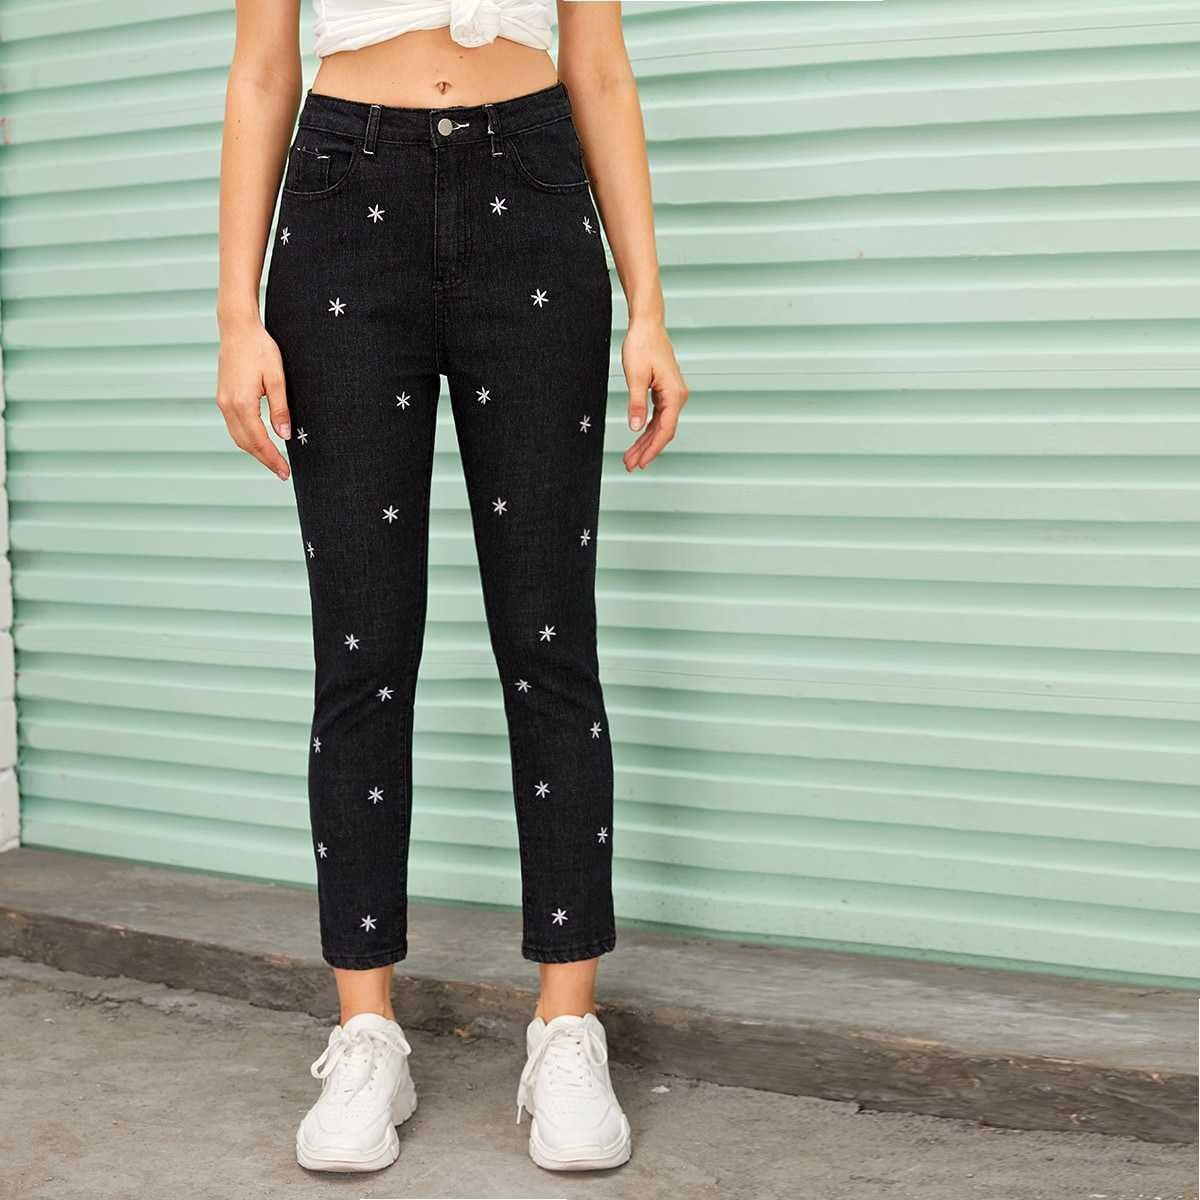 Floral Embroidered Button Fly Carrot Jeans in Black by ROMWE on GOOFASH